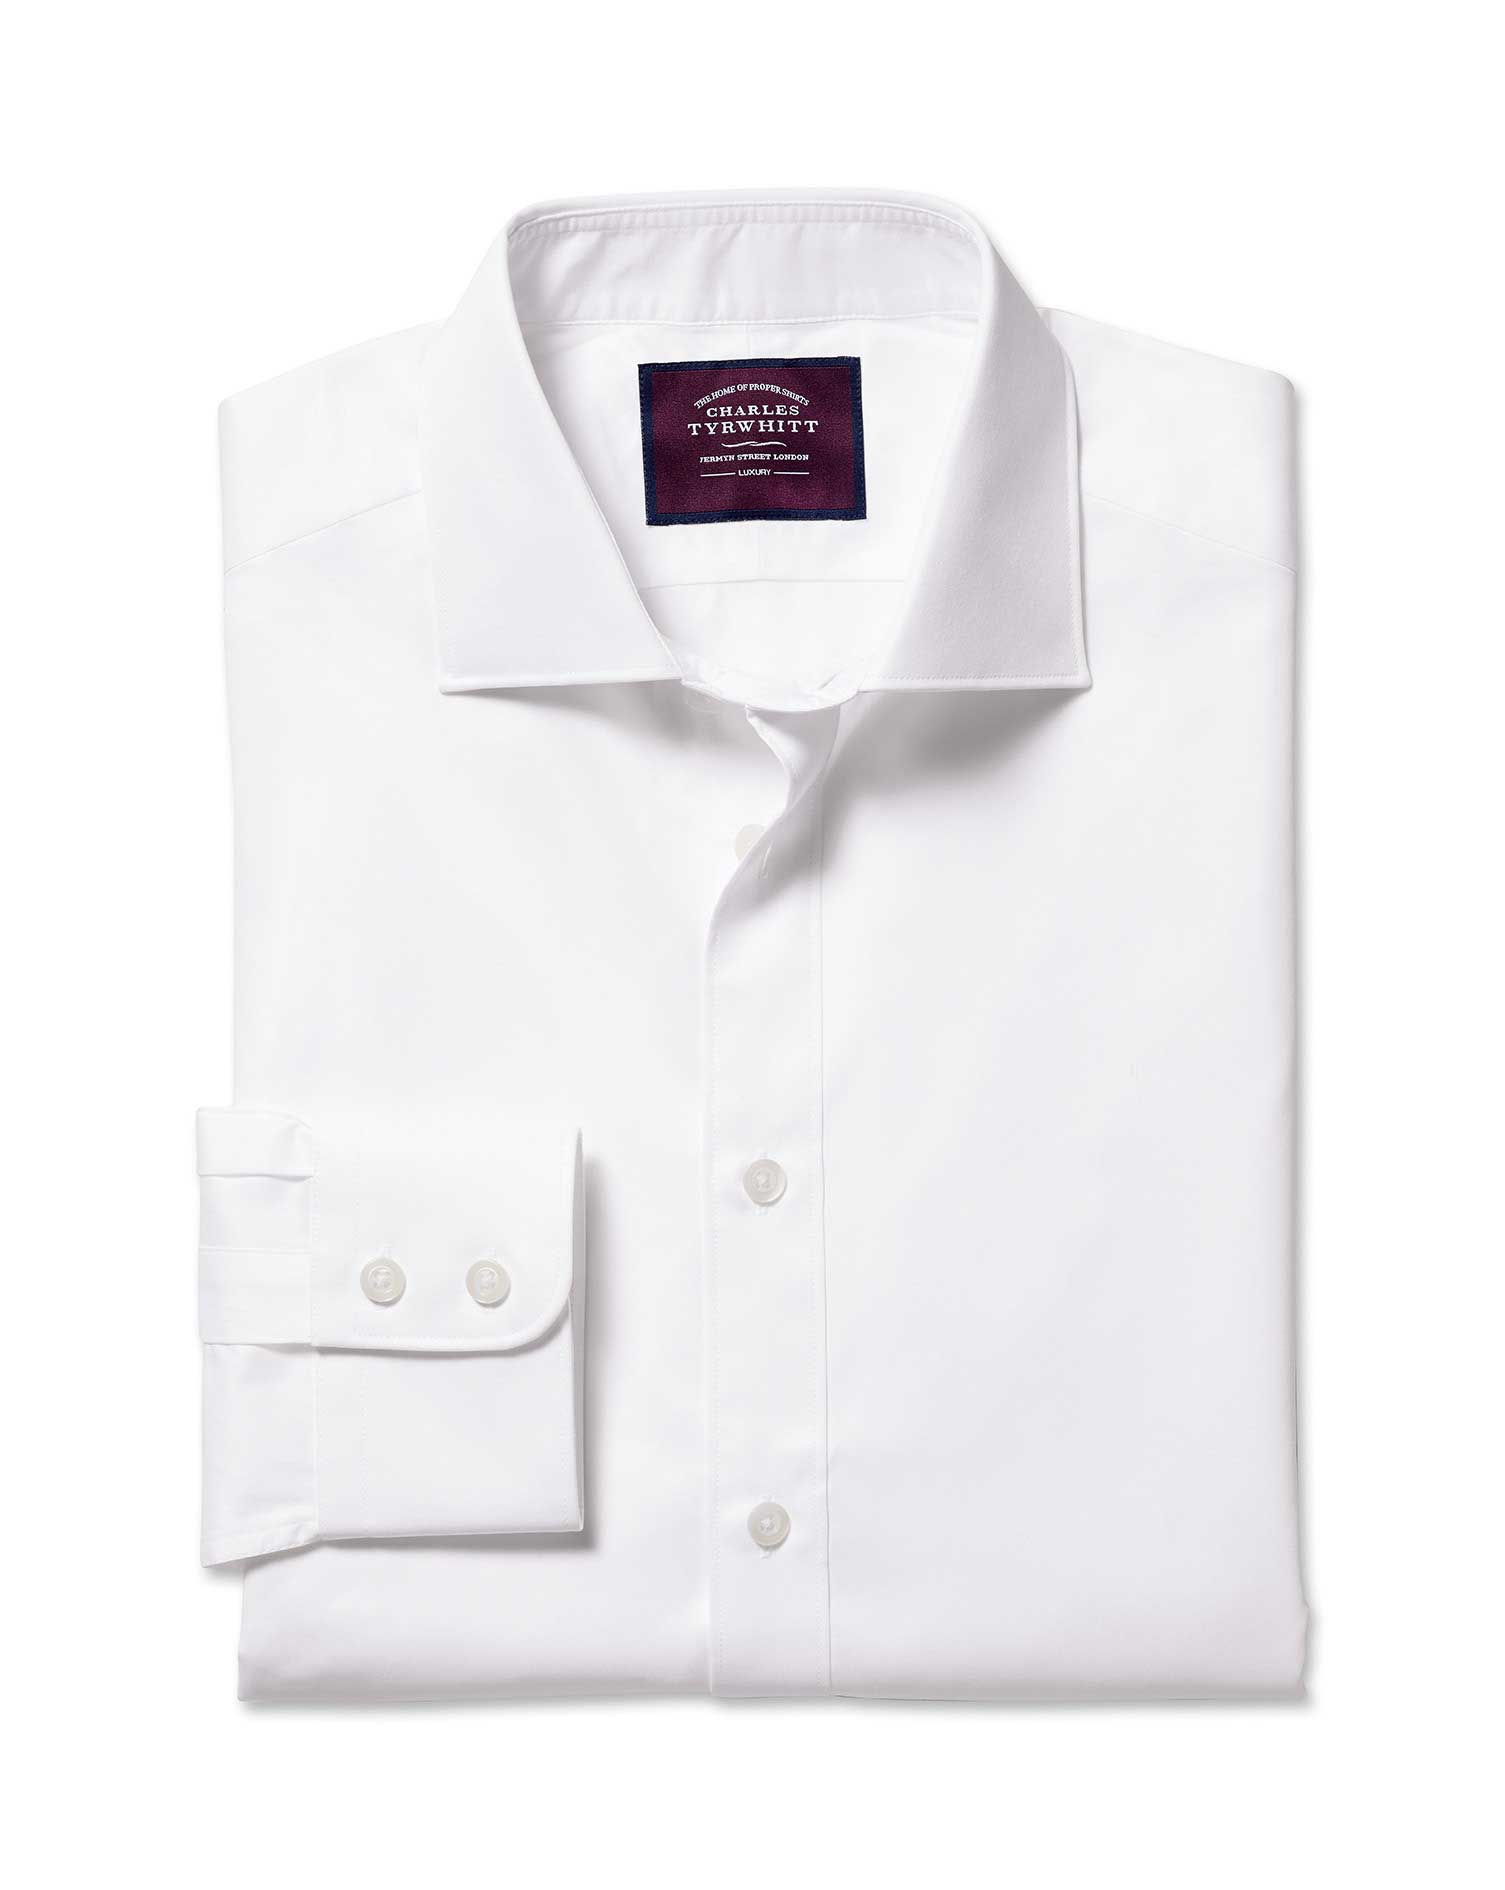 Classic Fit Semi-Cutaway Luxury Twill White Egyptian Cotton Formal Shirt Double Cuff Size 16.5/38 by